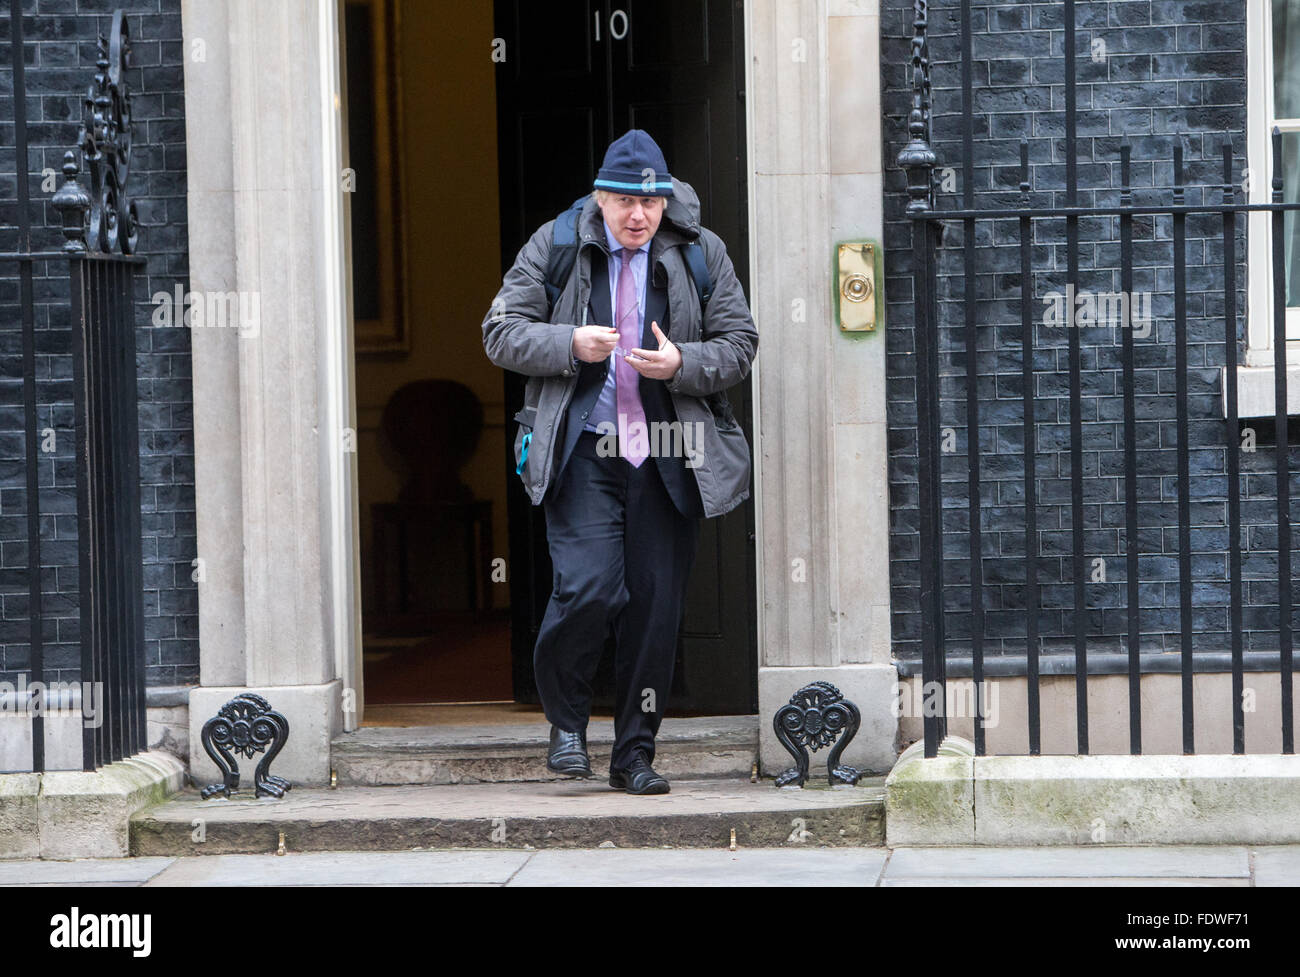 Boris Johnson,Mayor of London and MP for Uxbridge and South Ruislip,at Number 10 Downing Street for a Cabinet meeting - Stock Image